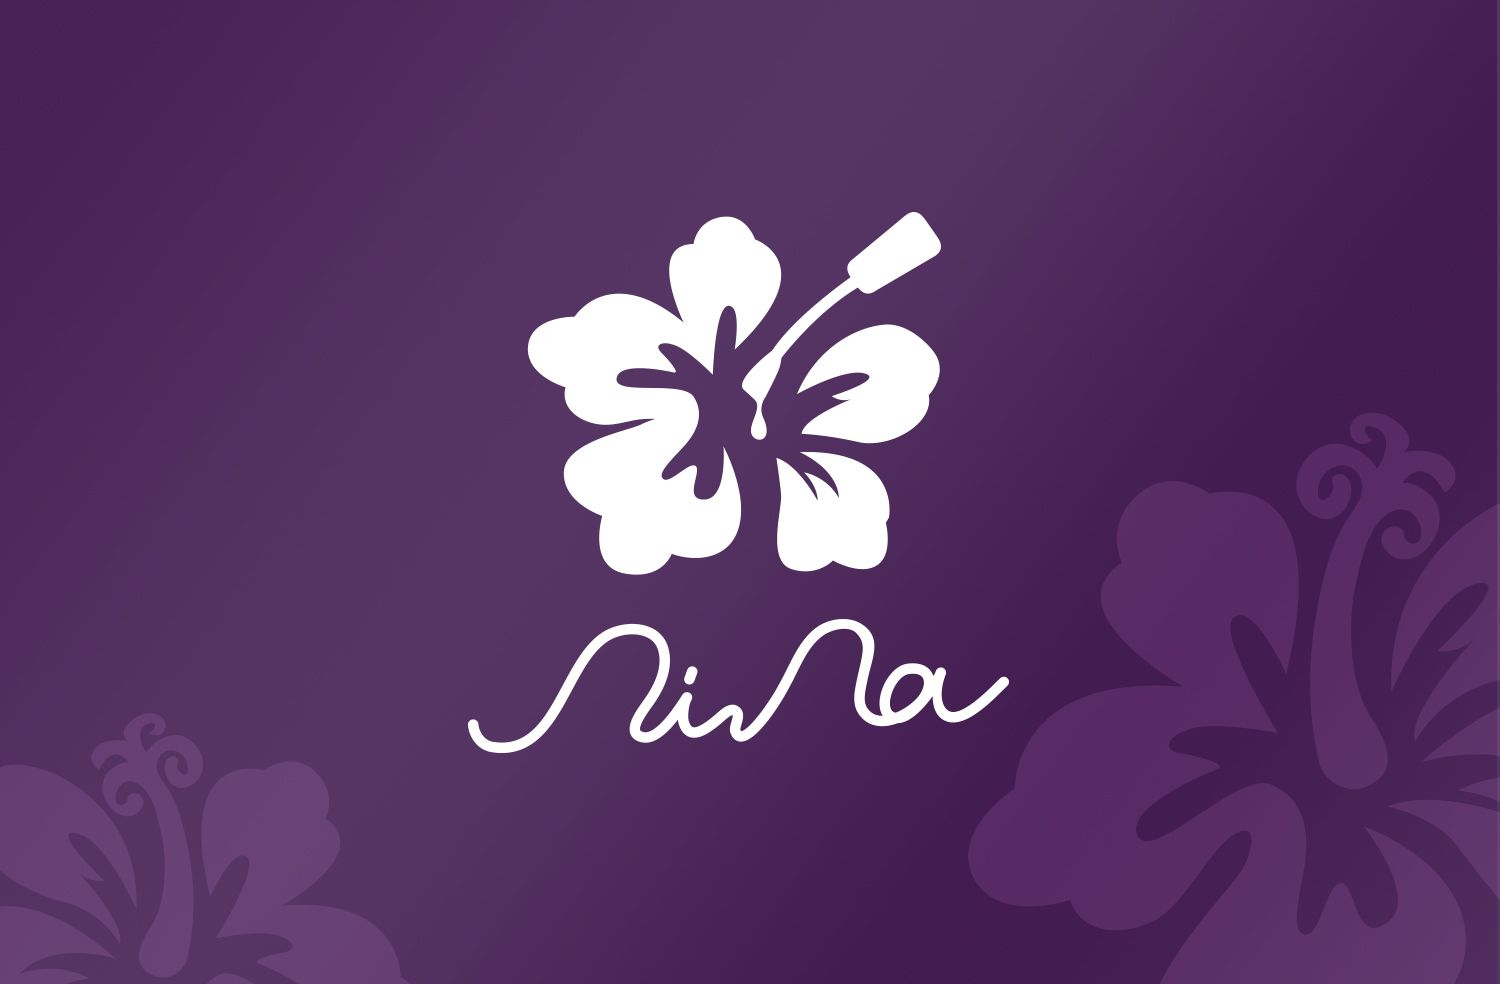 Branding Logo Design We Took Hibiscus Rosa Sinensis As The Brand S Main Image For Hibiscus Rosa Sinensis Represents Branding Design Logo Logo Design Nail Logo